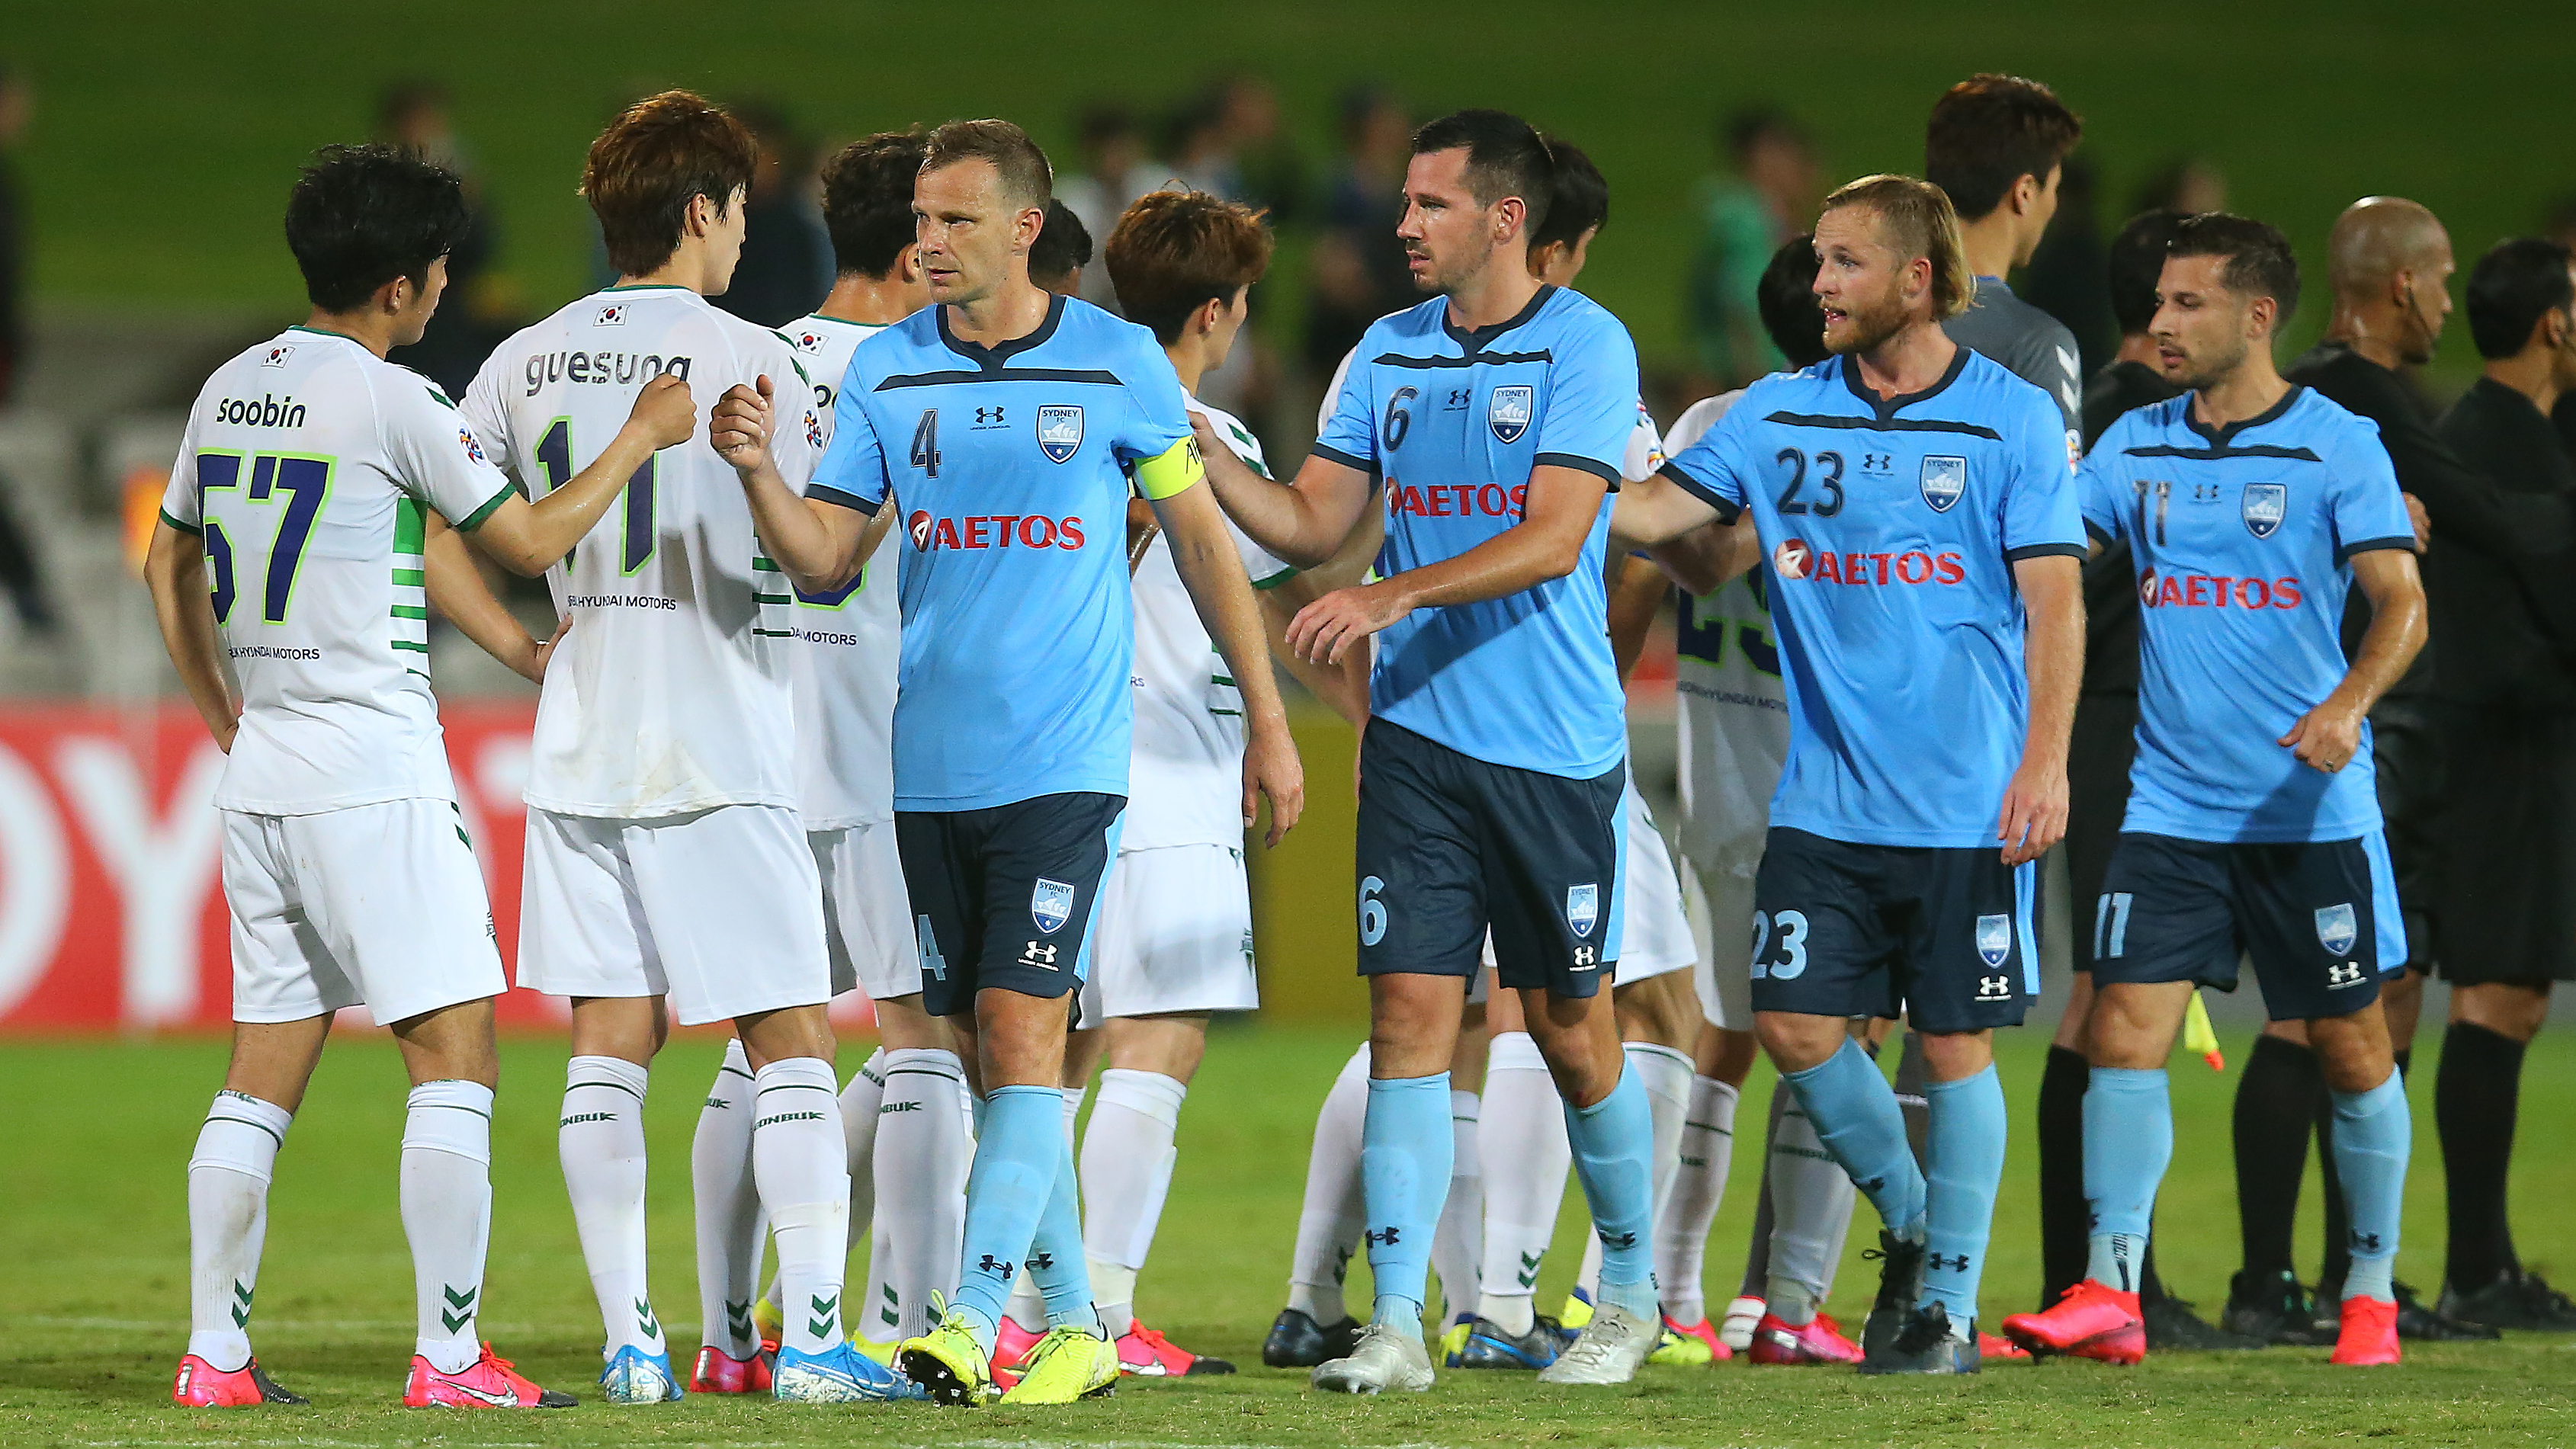 A-League and Australian football news LIVE: Sydney FC held to ACL draw